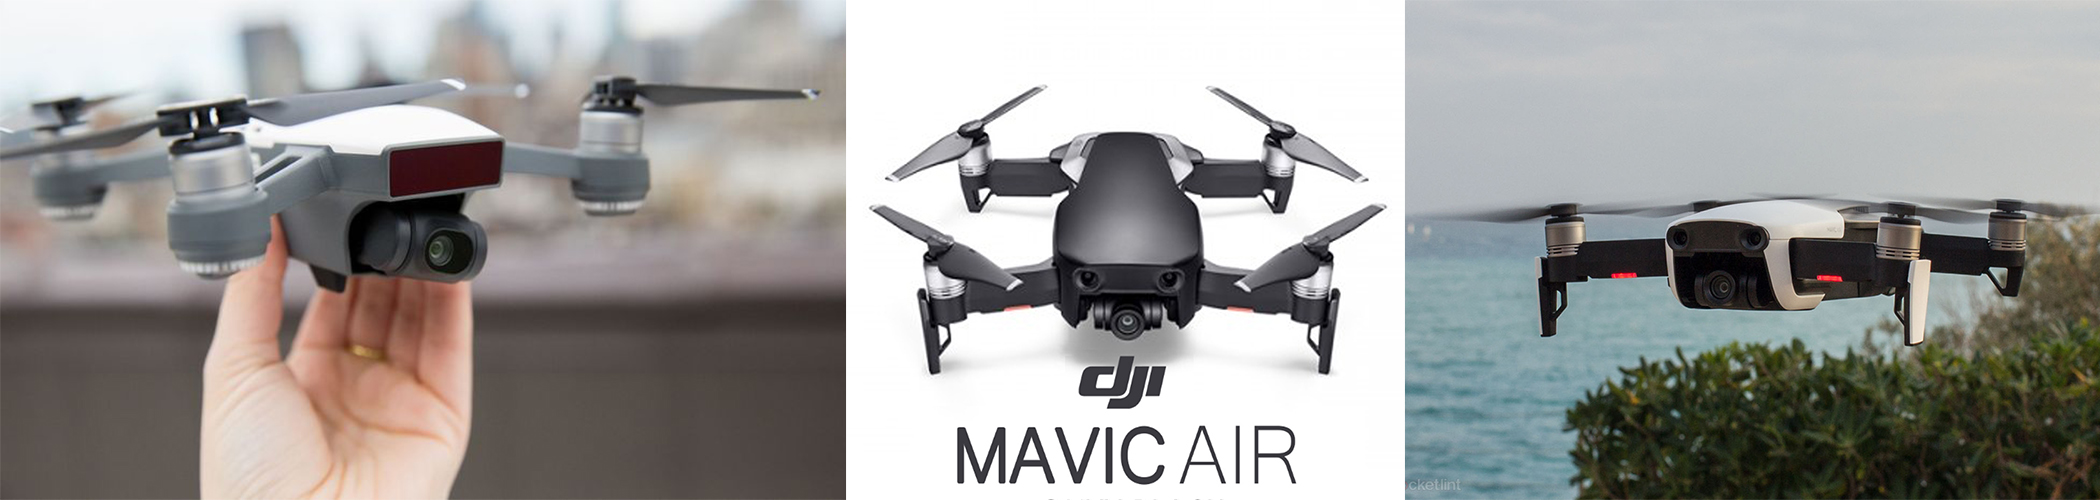 DJI Mavic Air REview